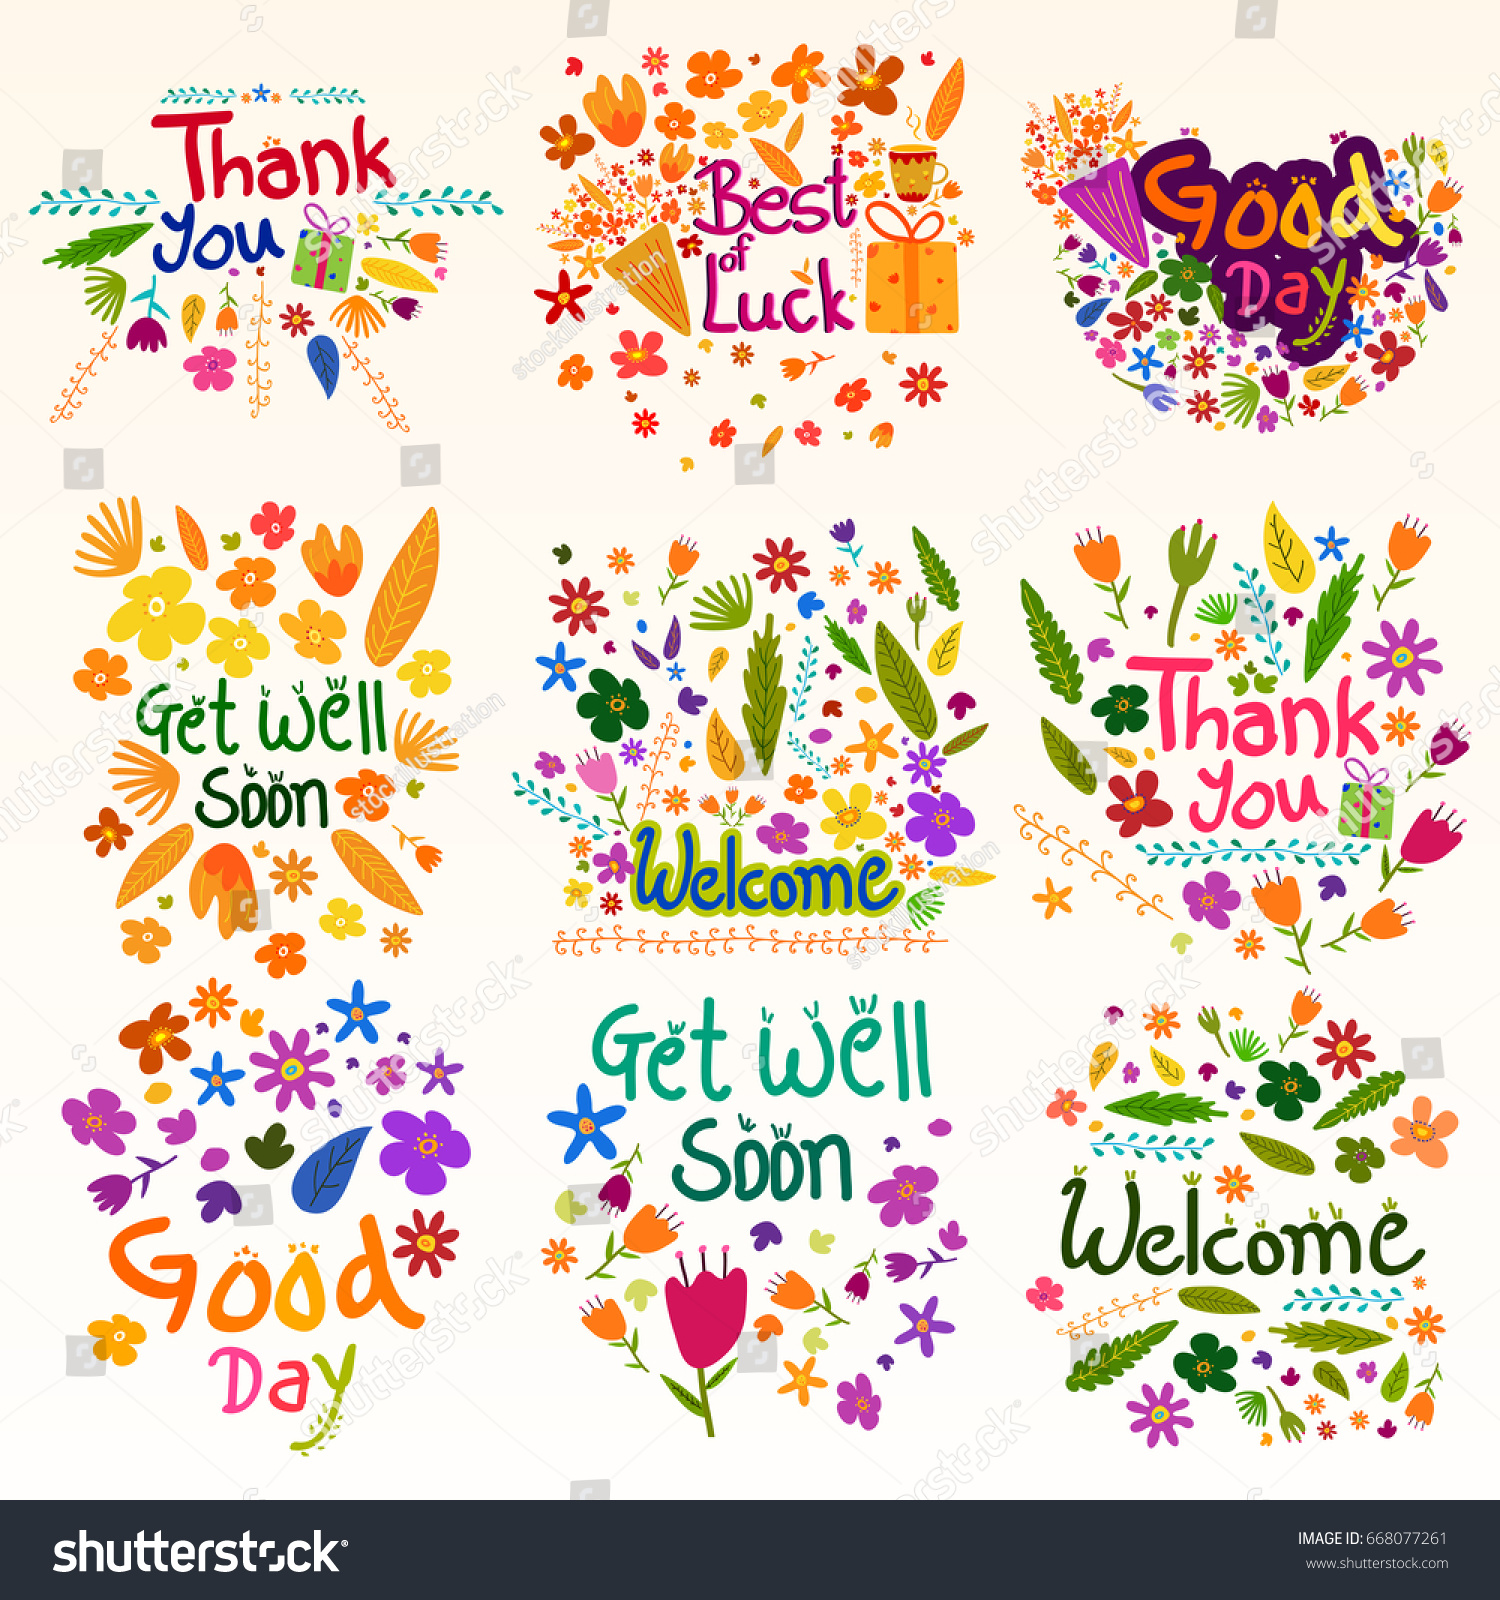 Wishing Greetings Thank You Best Luck Stock Vector 668077261